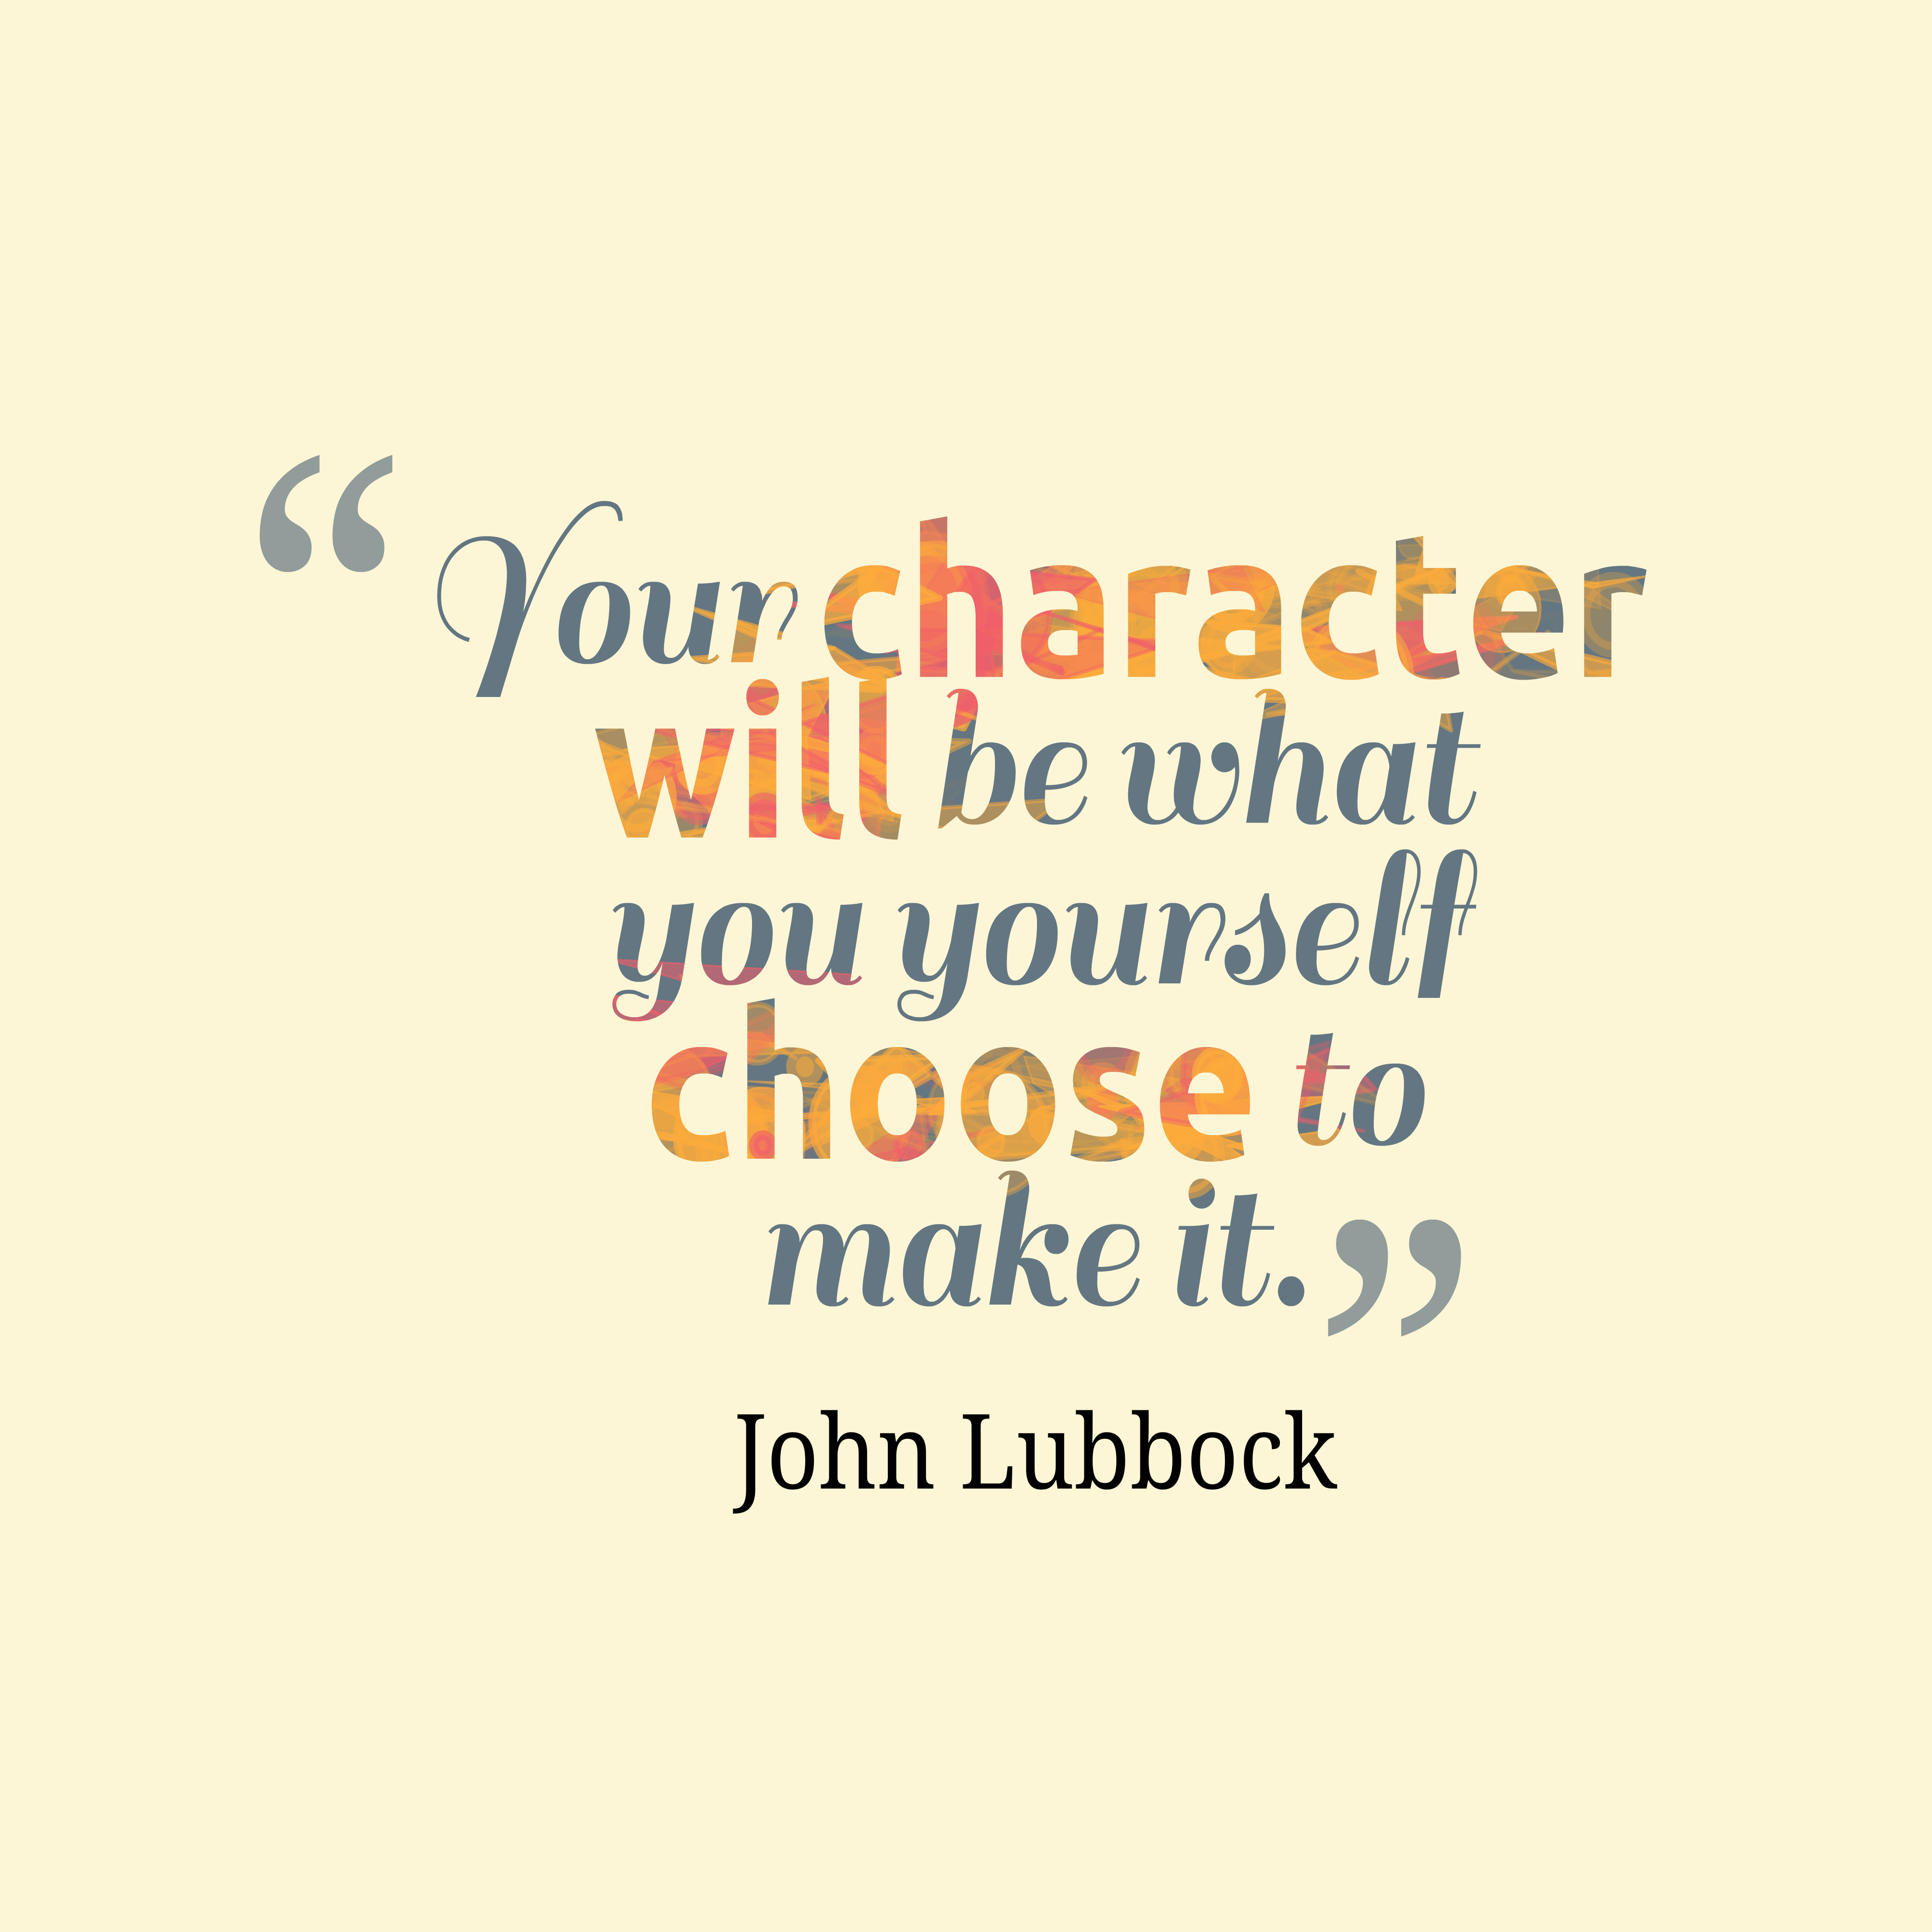 Your character will be what you yourself choose to make it. John Lubbock